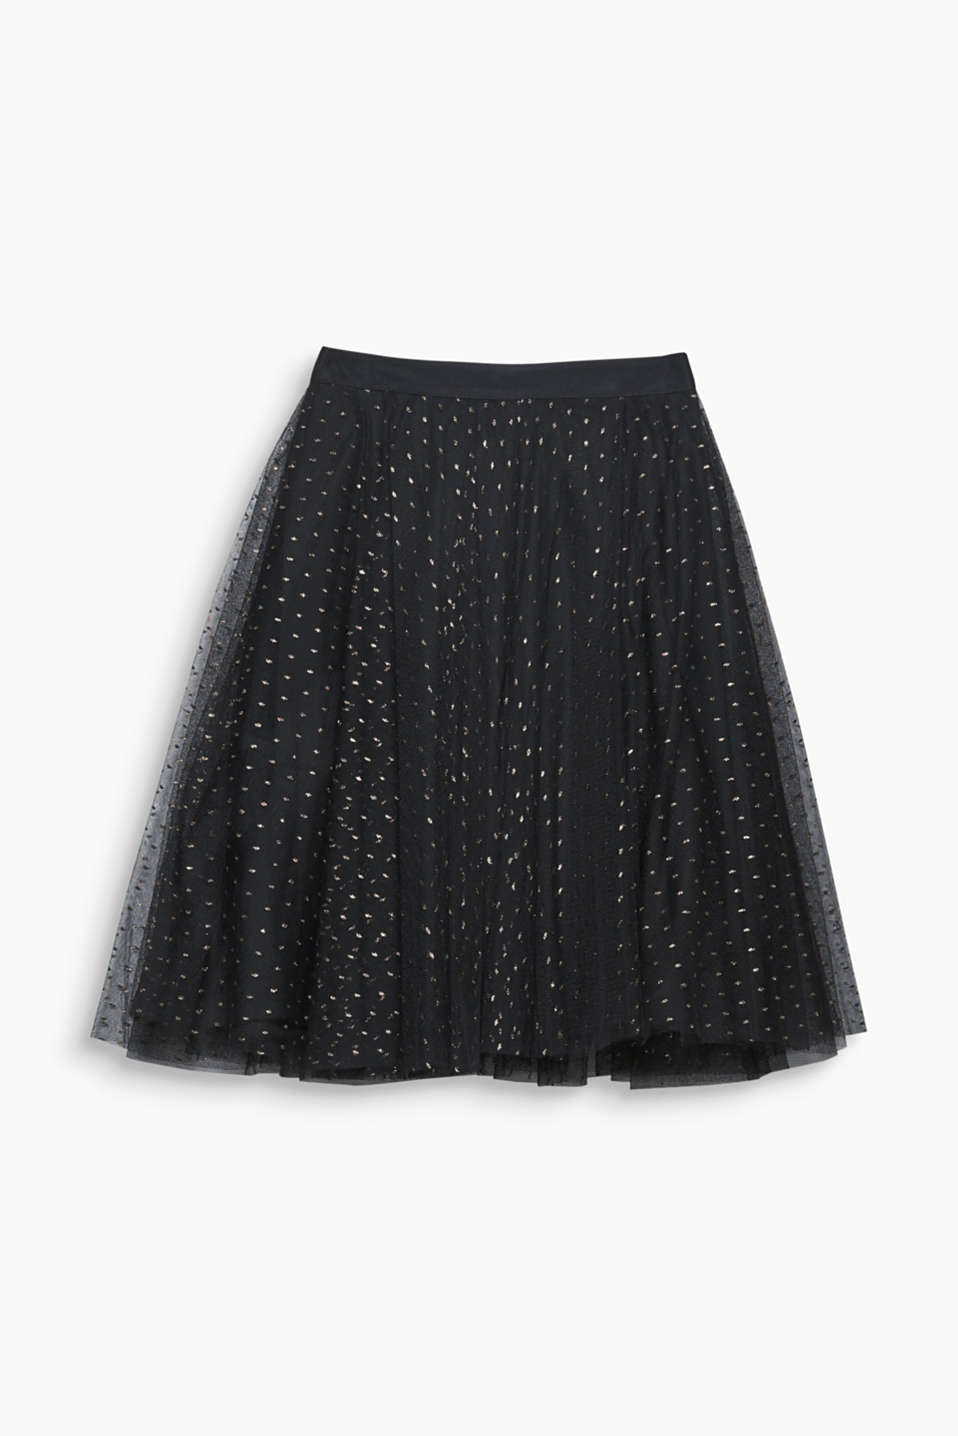 Simply enchanting! This tulle skirt is a must have because of its golden polka dots and fashionable high-waistband!